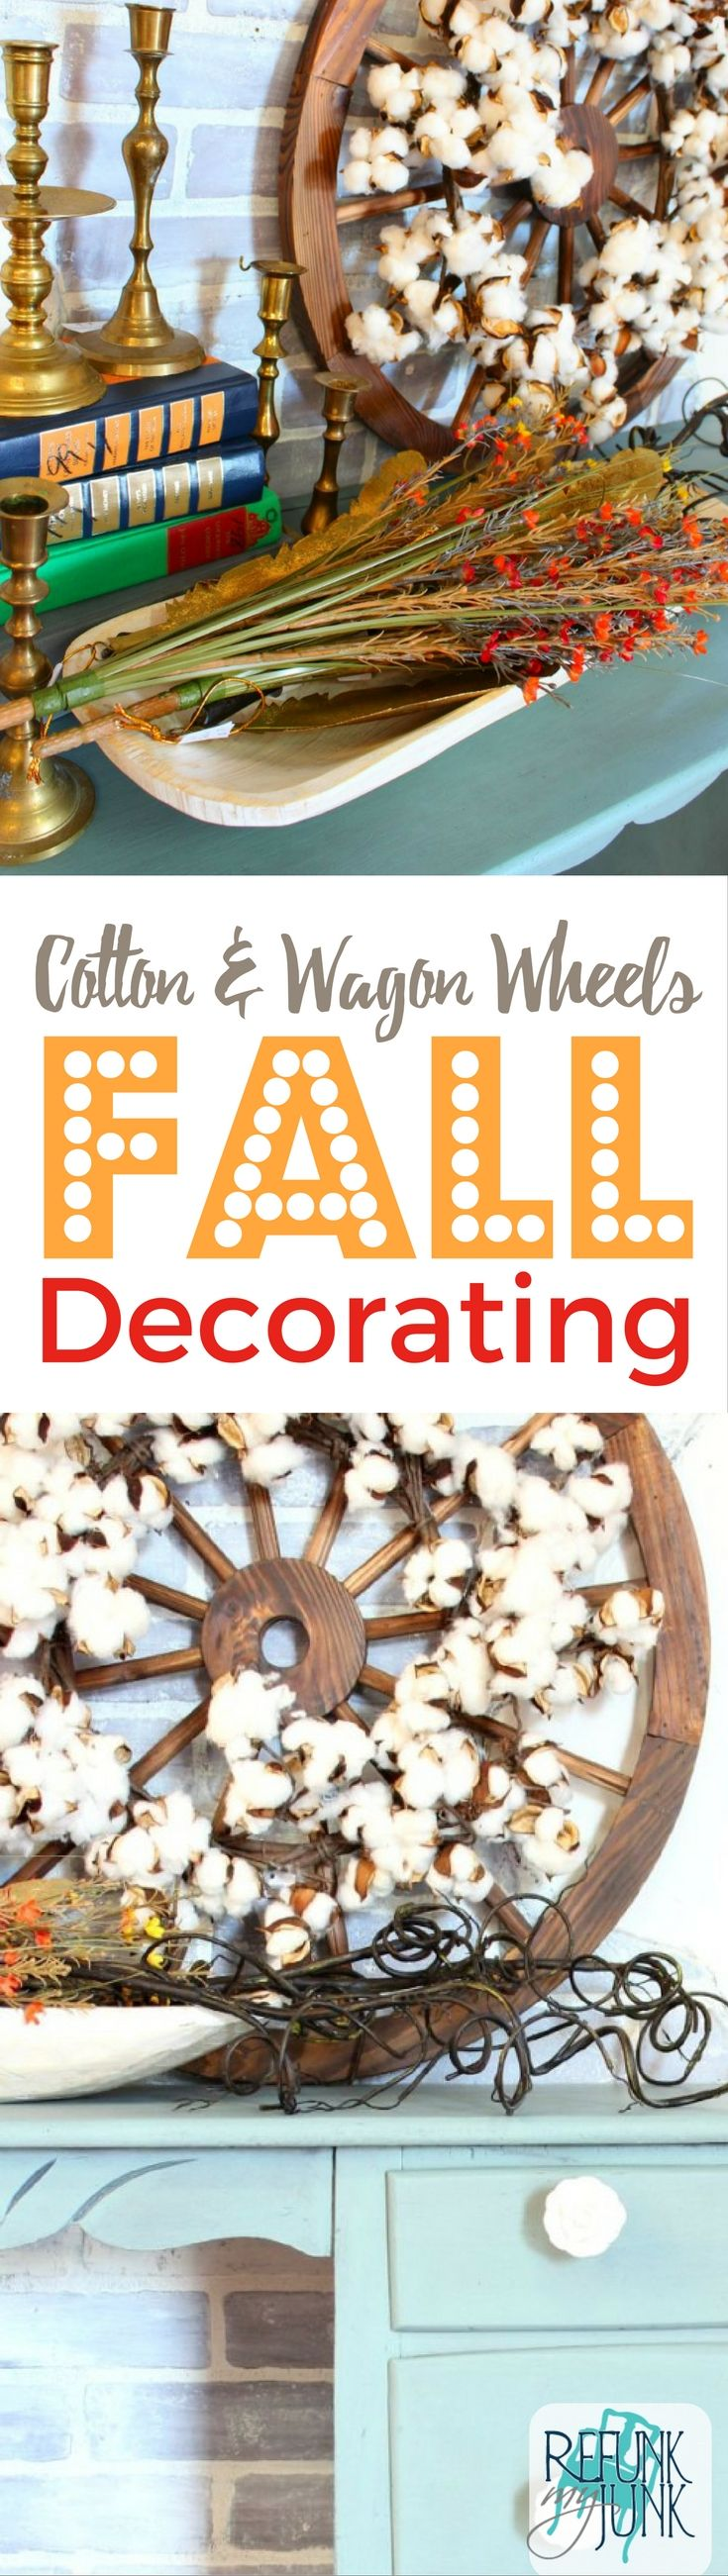 DIY Fall Decorating with Cotton & Farmhouse Wagon Wheels   Refunk My Junk   Fall Decor Ideas with natural items